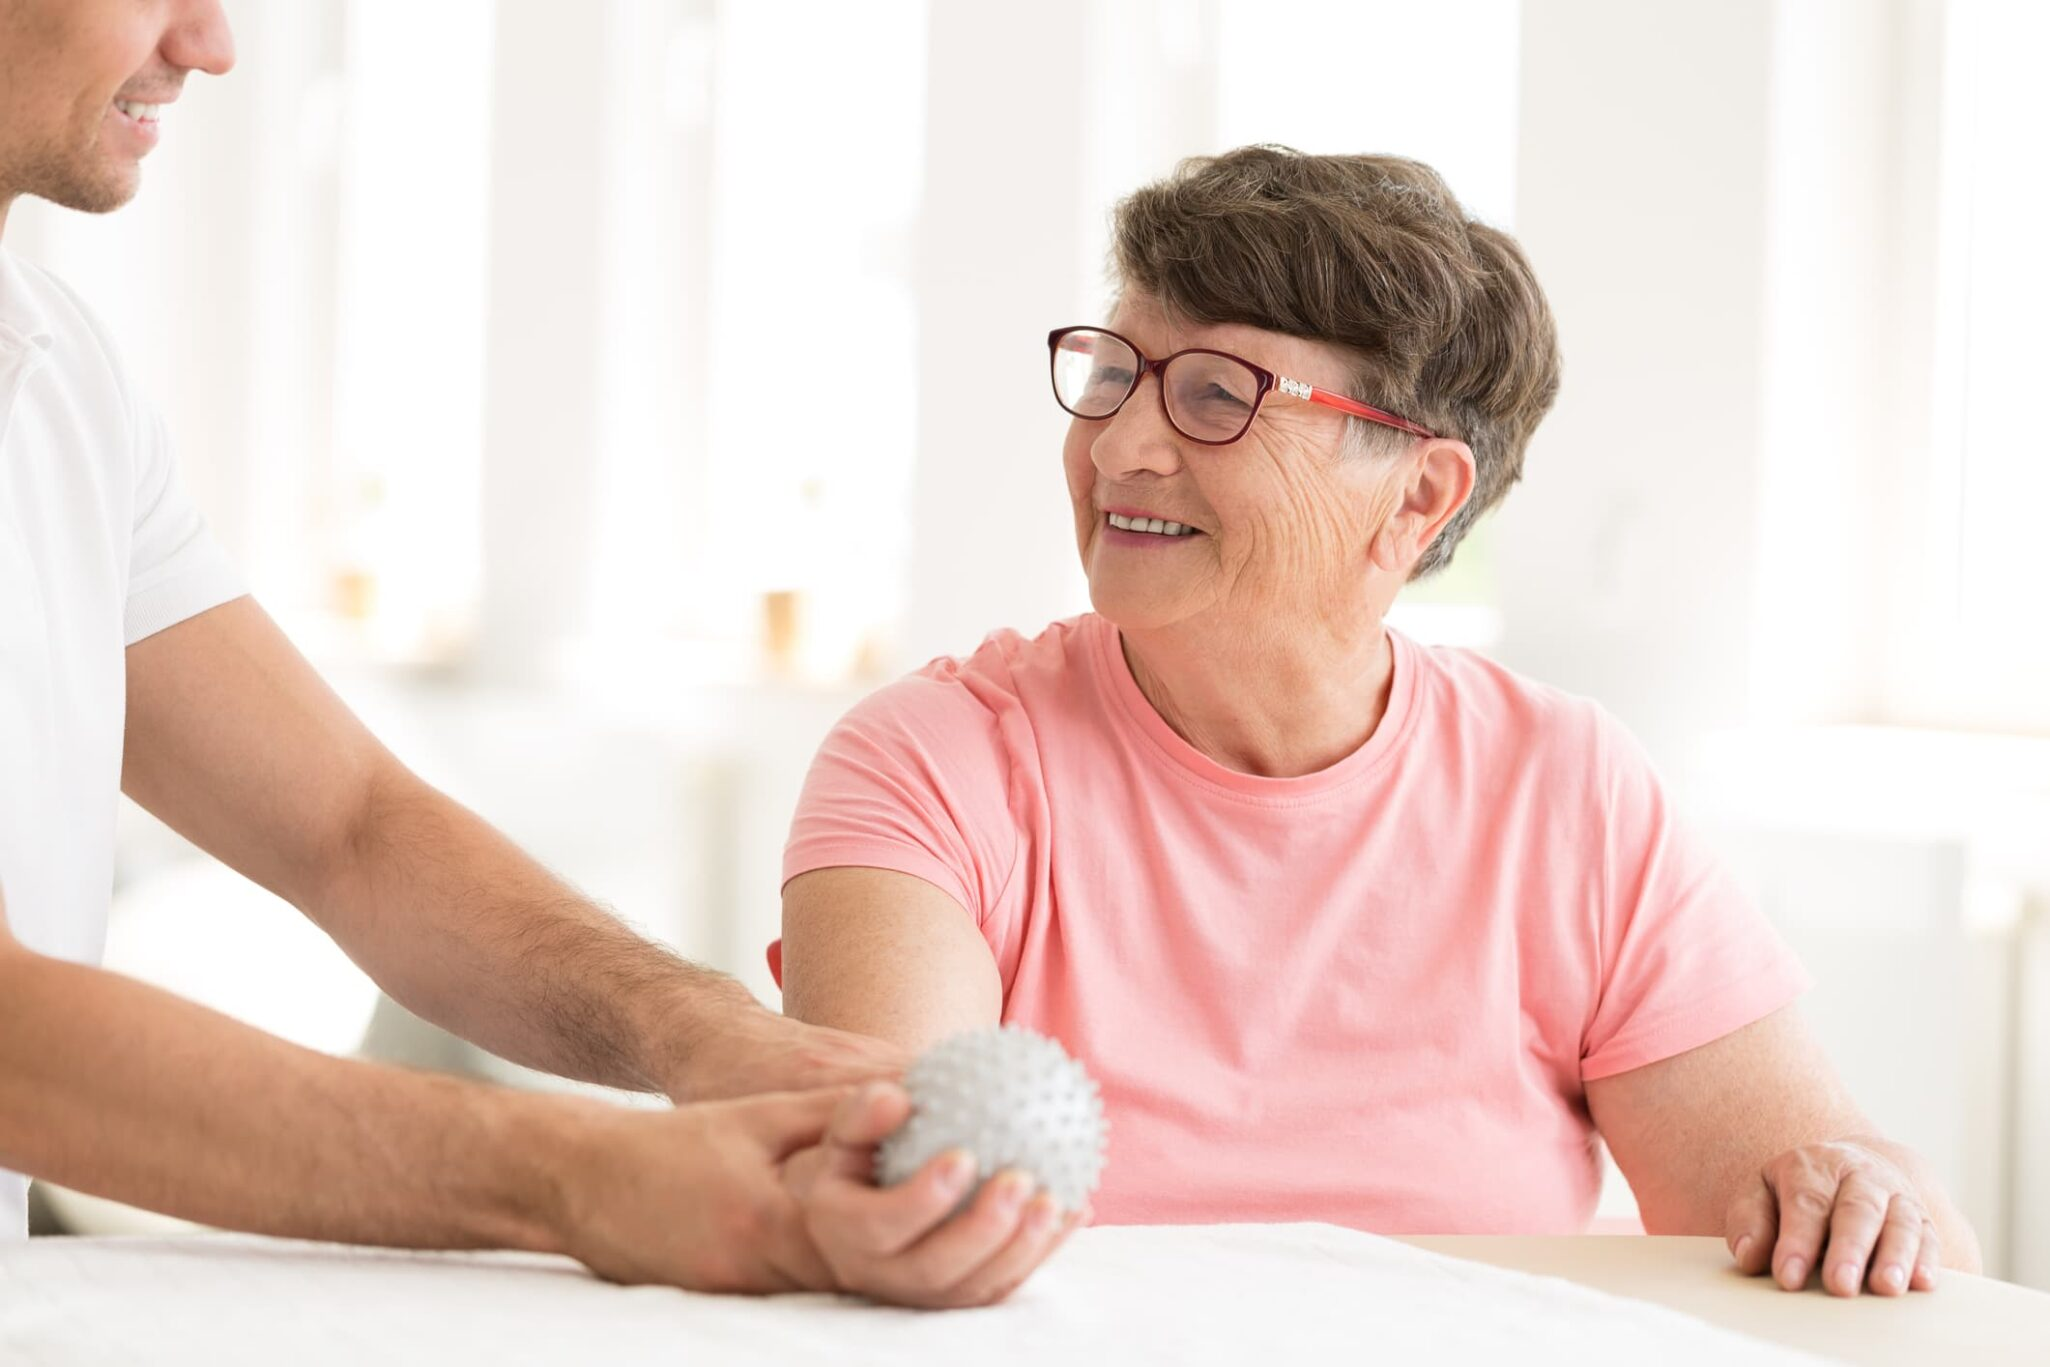 Older woman sitting and smiling at therapist while holding therapy ball in her hand.